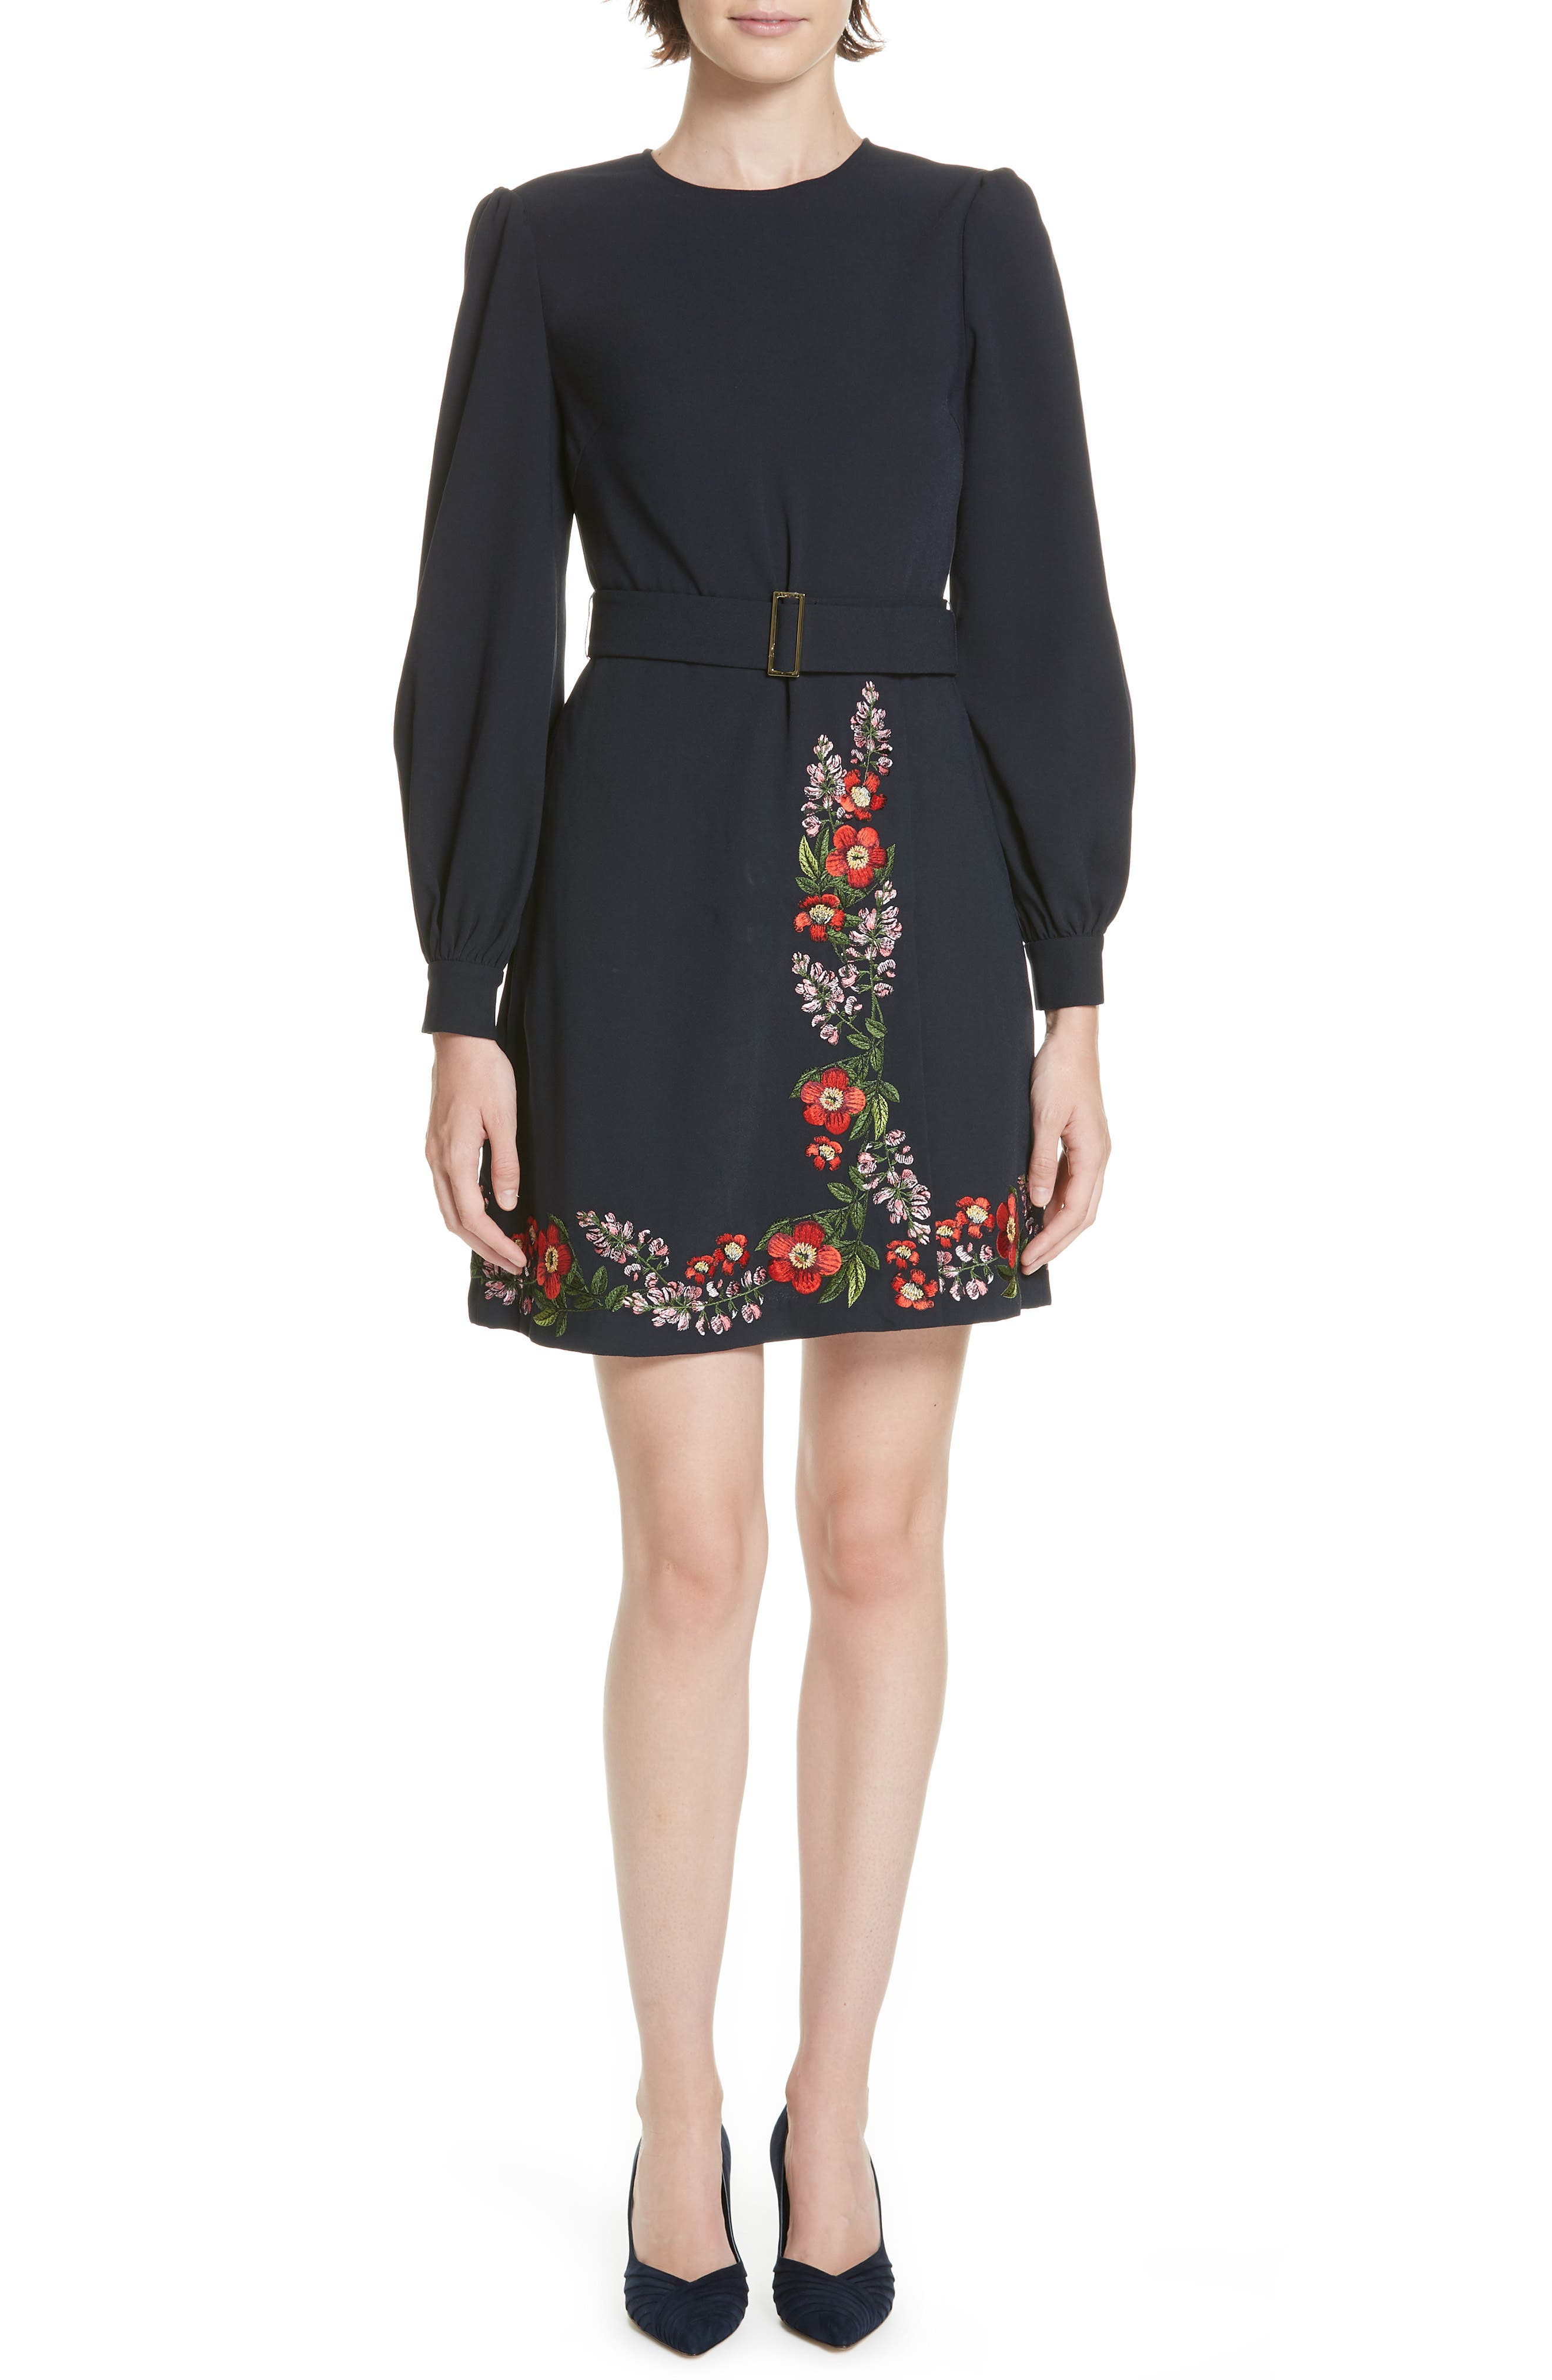 Silia Kirstenbosch Embroidered Dress,                         Main,                         color, DARK BLUE